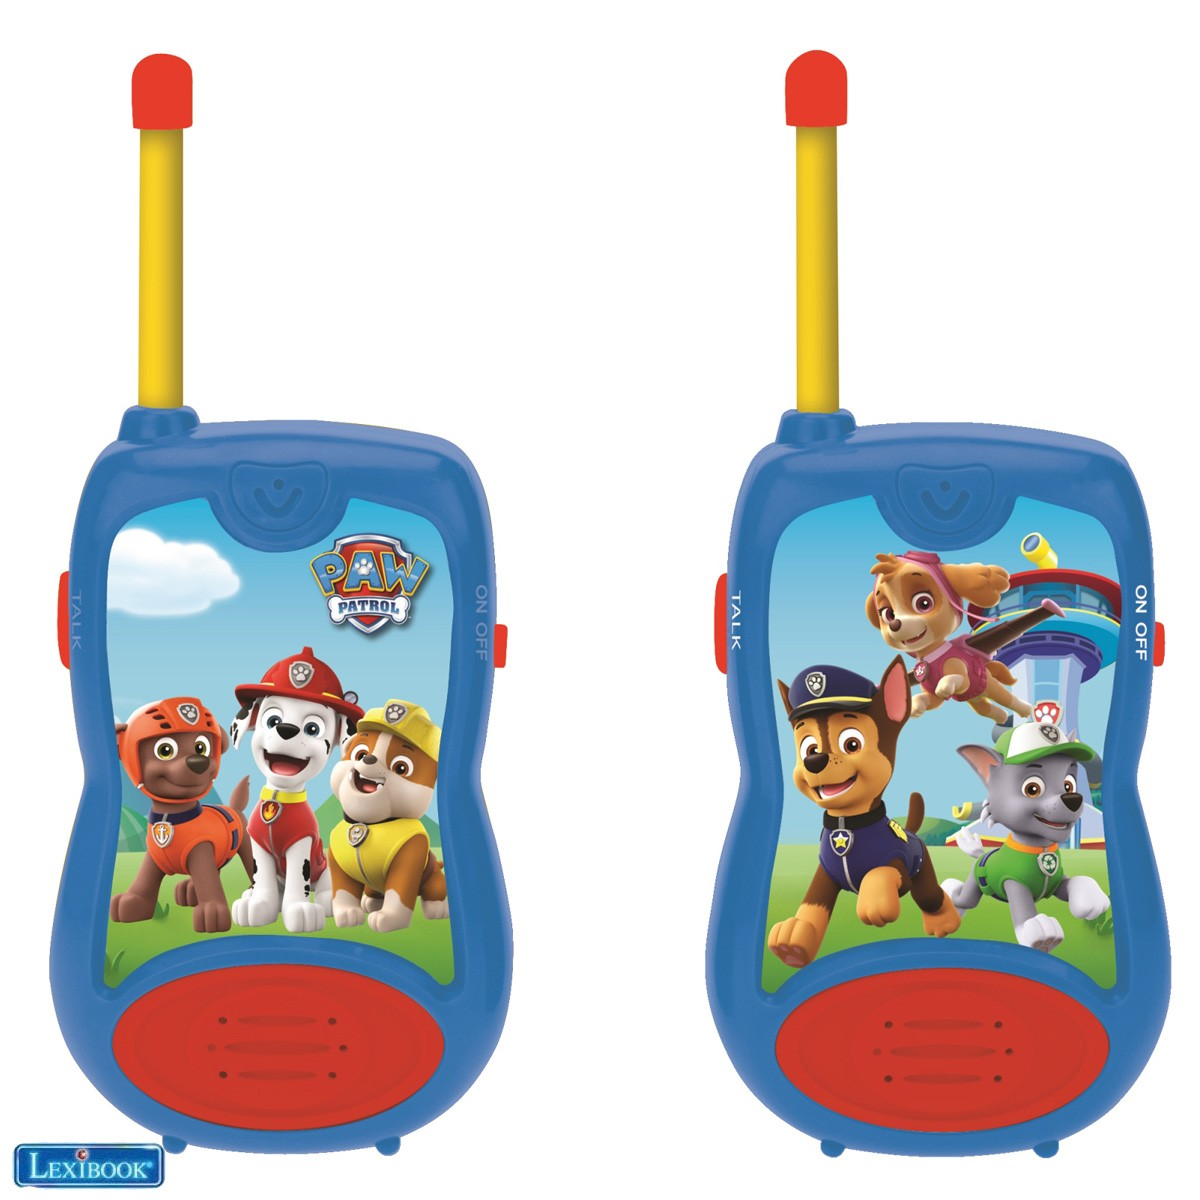 Paw Patrol Walkie-talkies